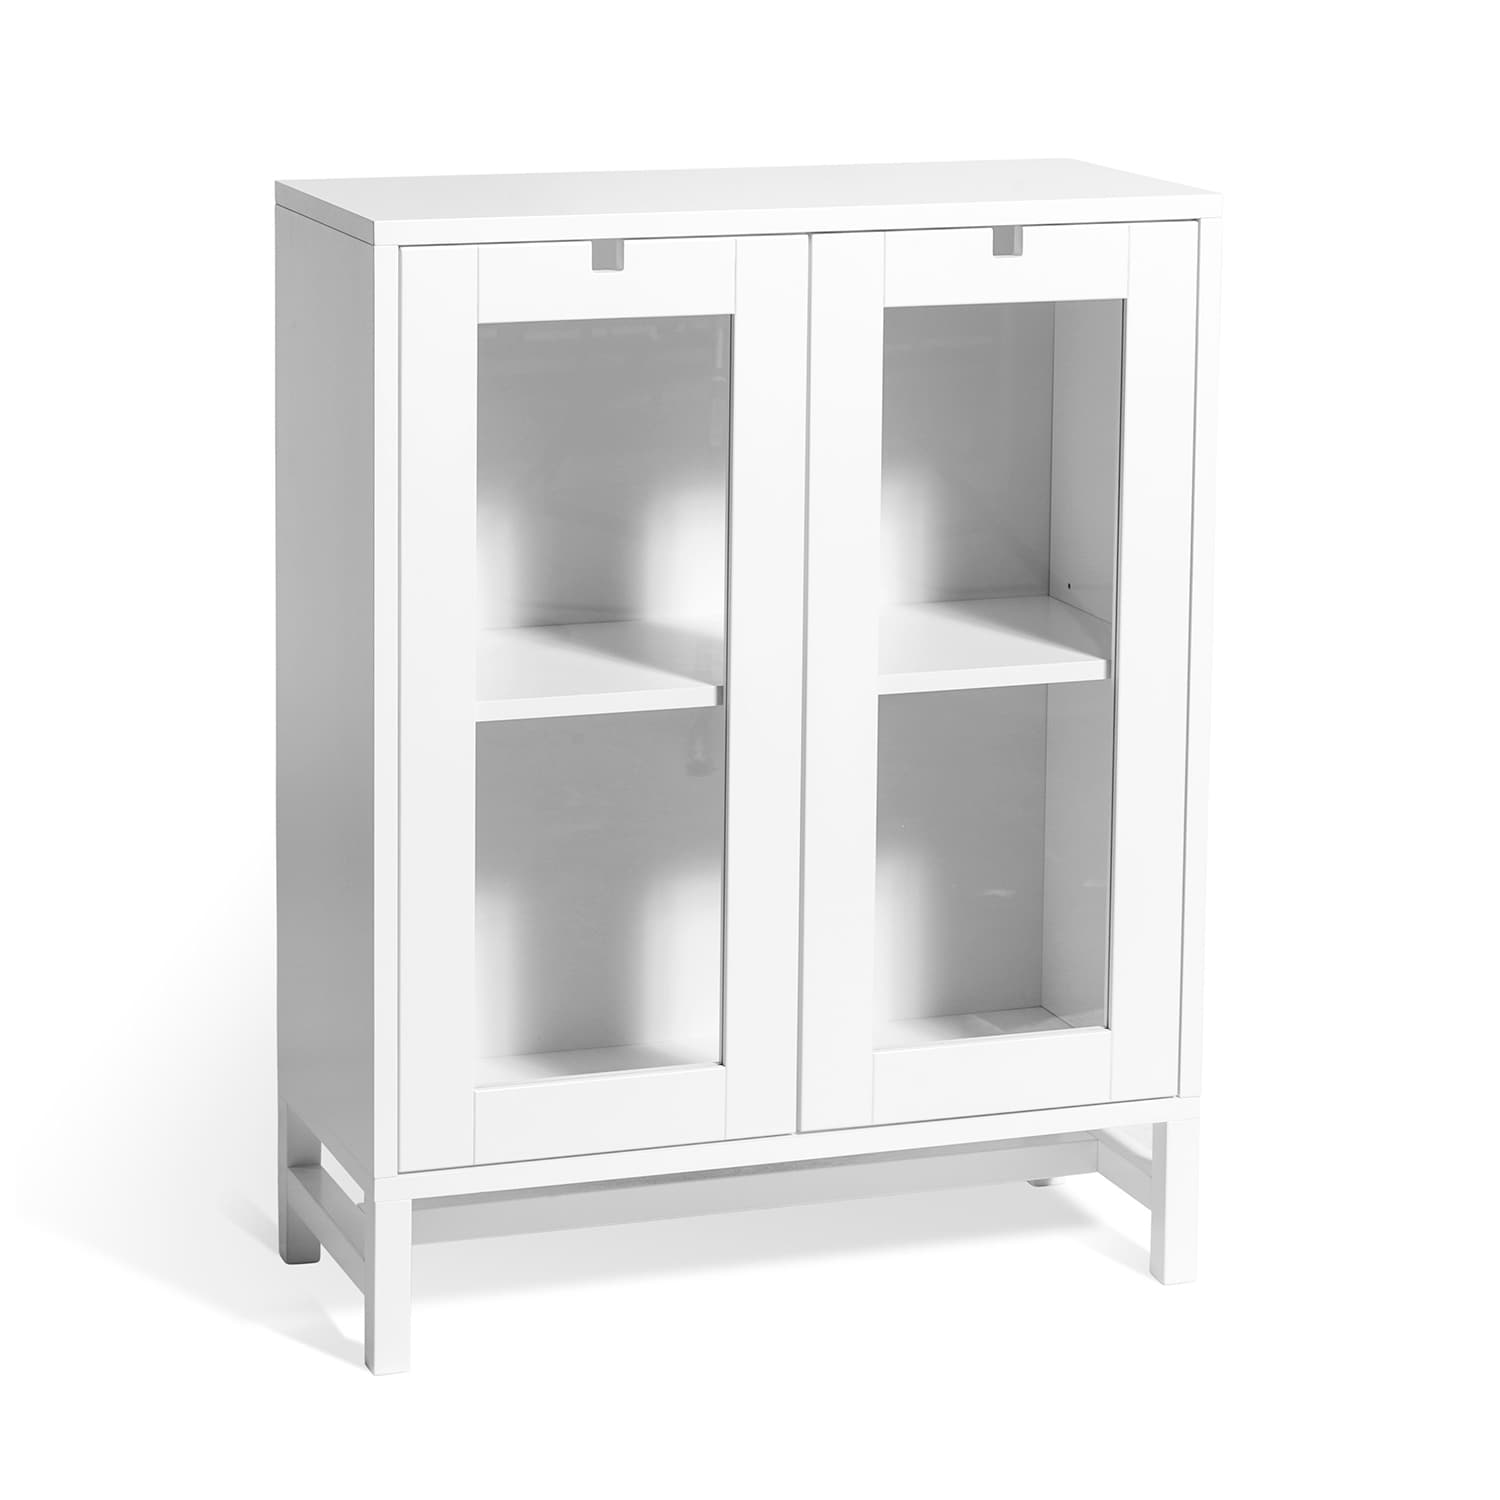 Falsterbo Cabinet Glass Doors 90 Cm White Lacquer Mavis